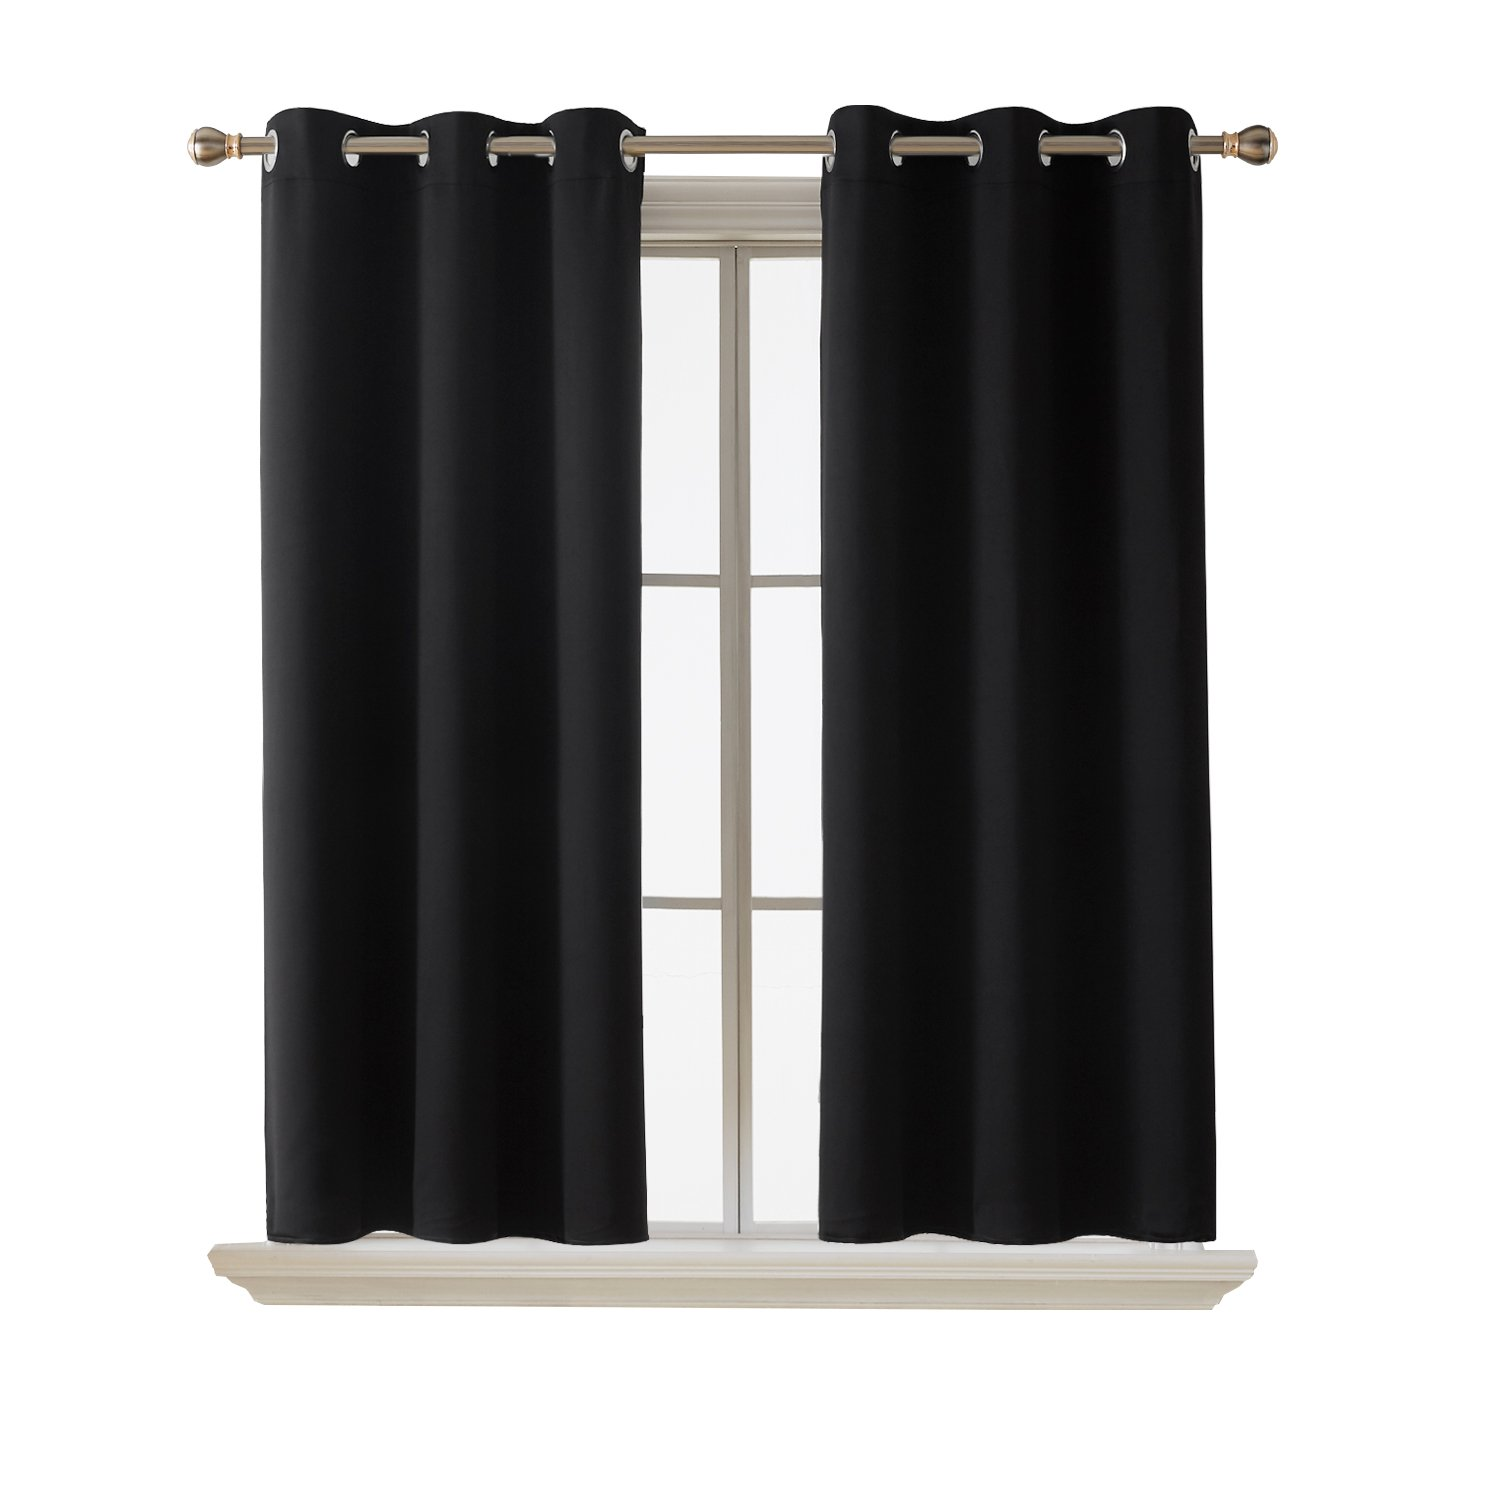 A Pair Of Blackout Curtains